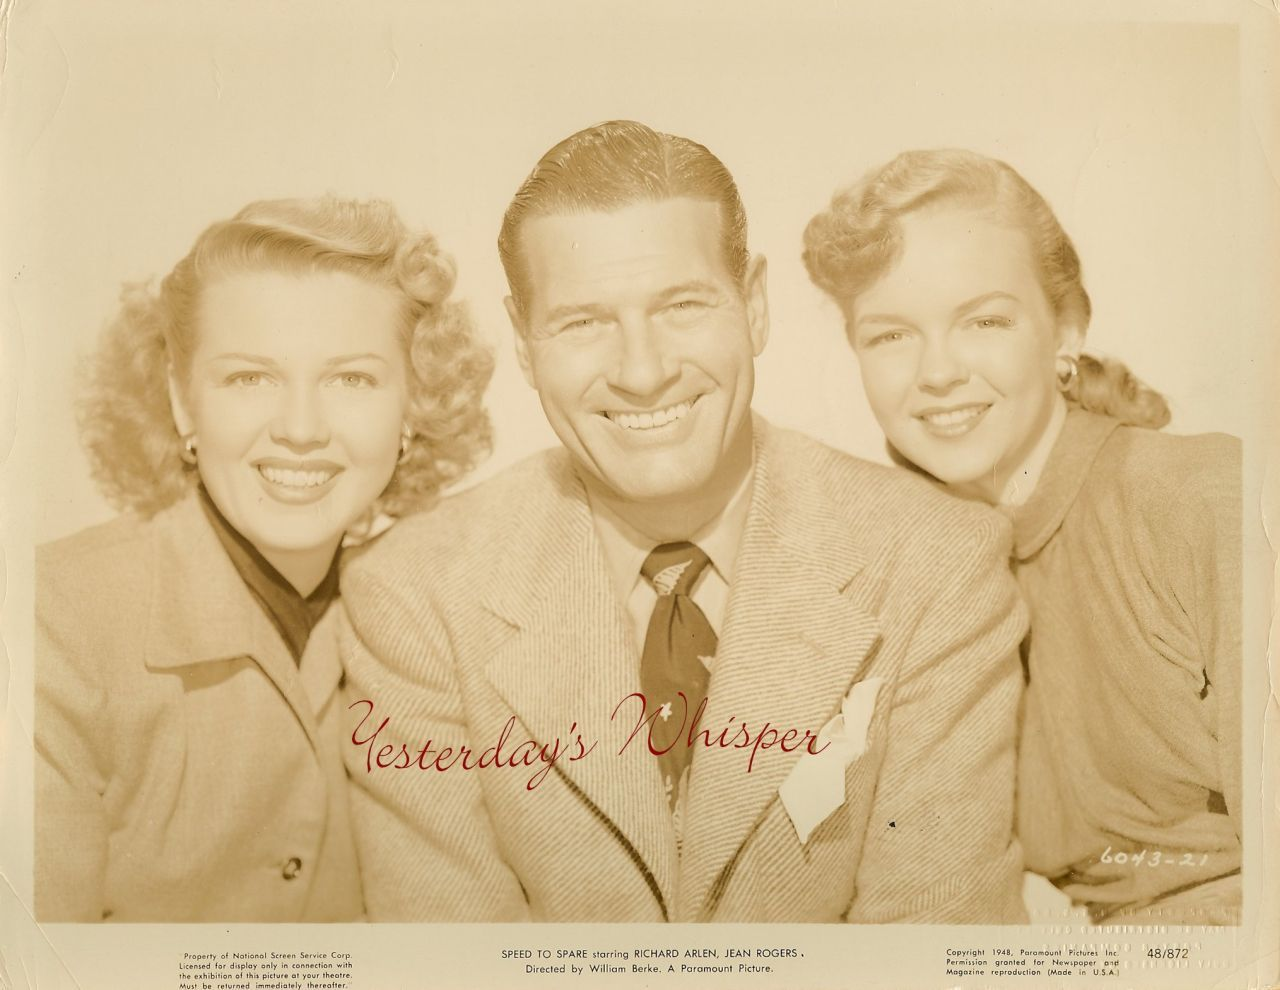 Richard ARLEN Jean ROGERS Speed to SPARE ORG  PHOTO